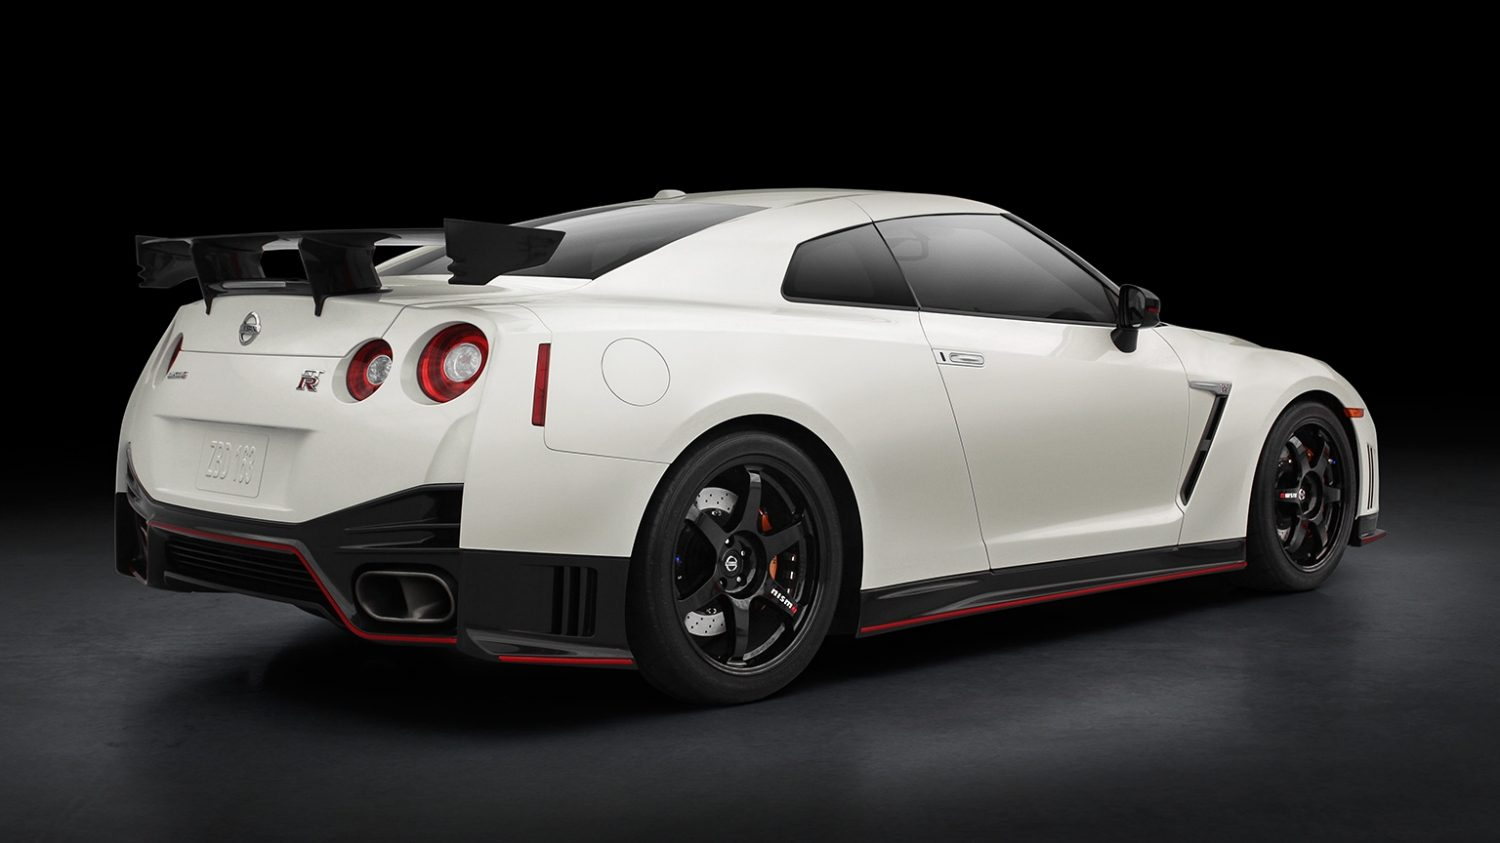 GT-R NISMO 車尾。